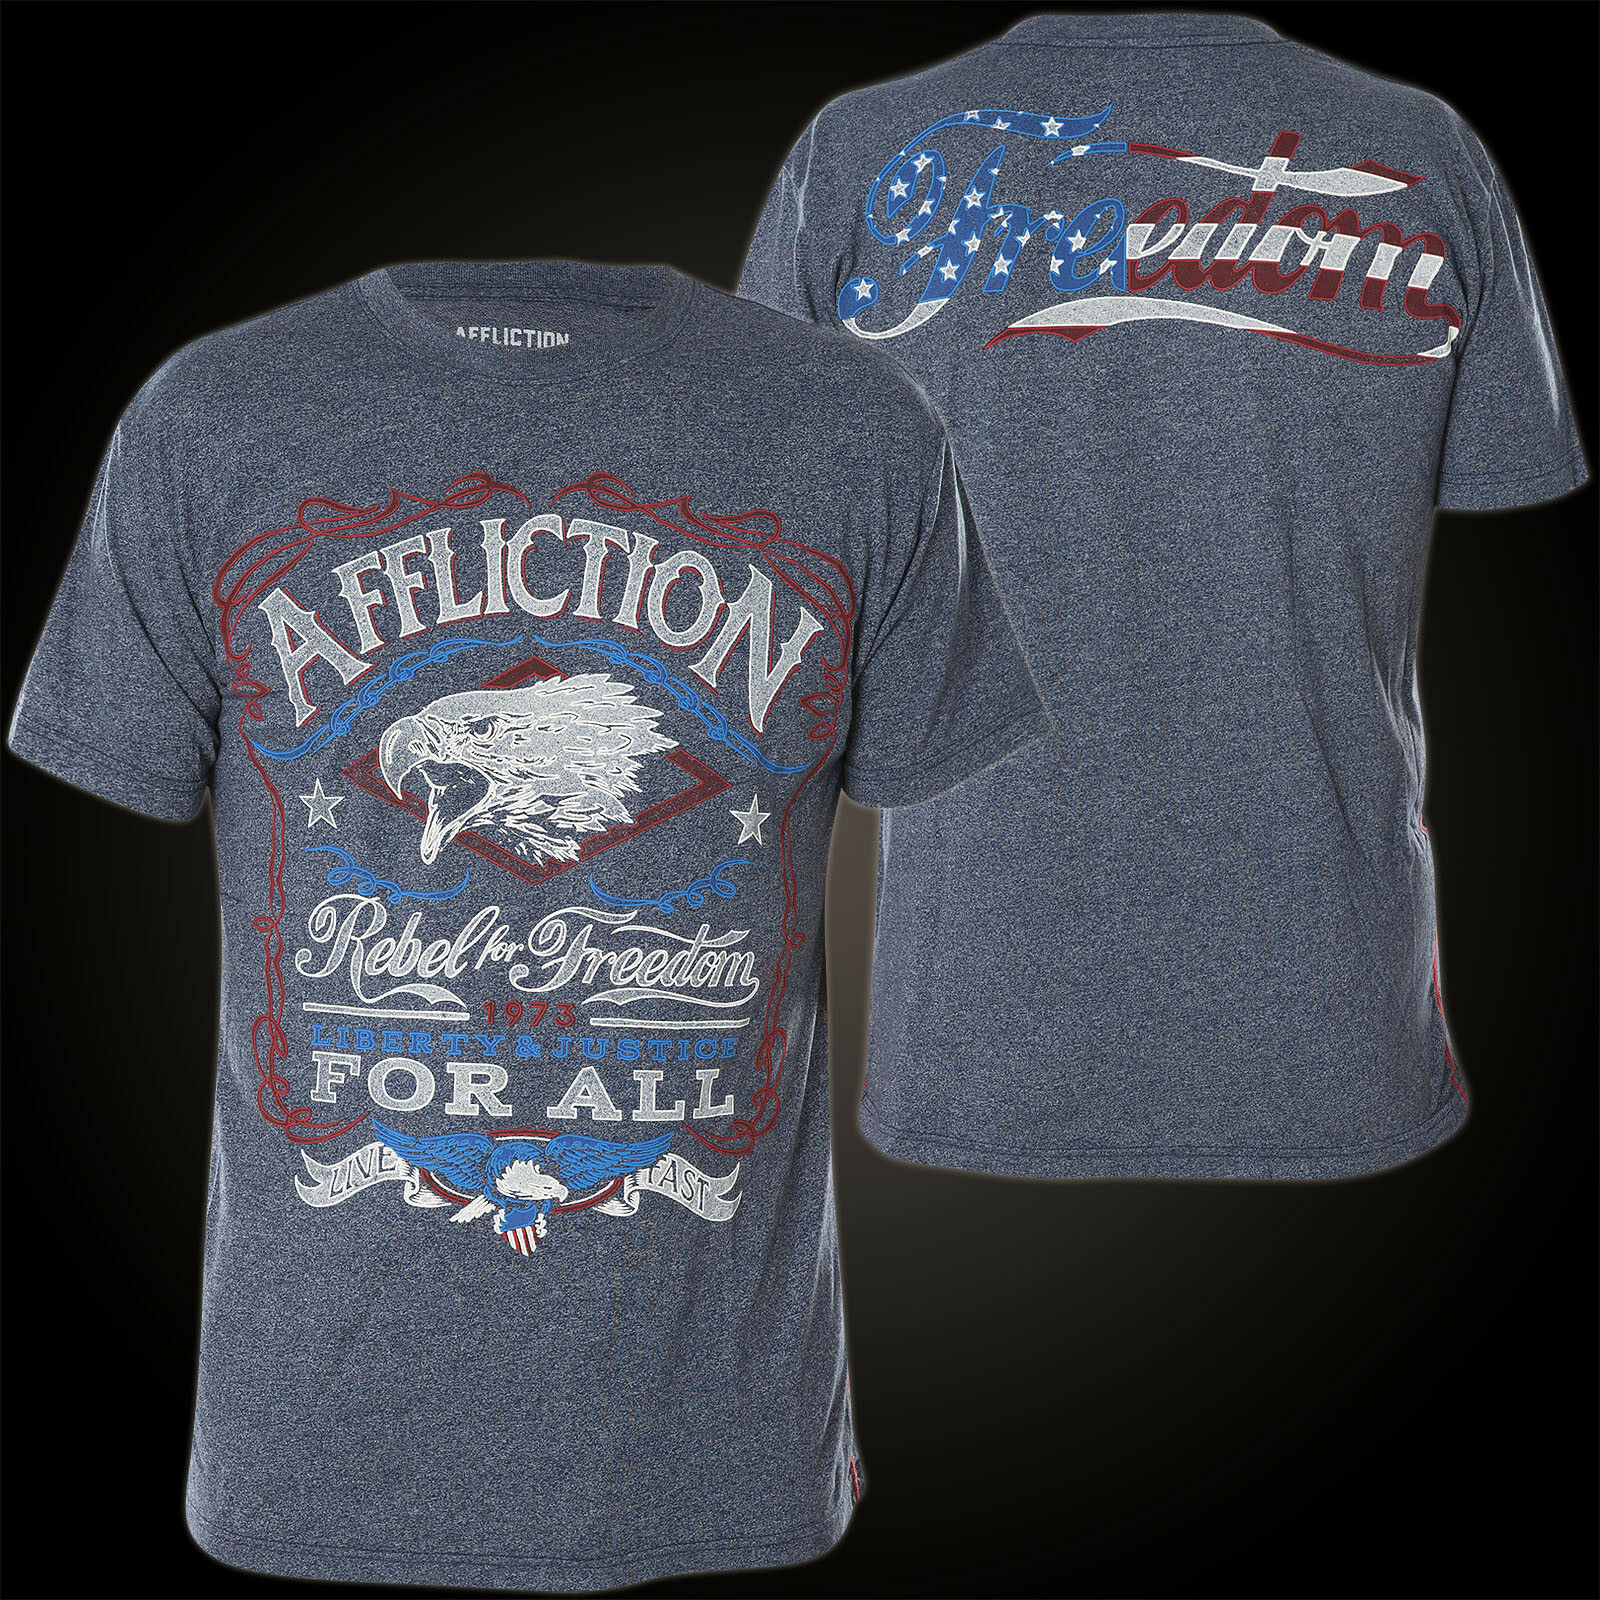 AFFLICTION T-Shirt Freedom Rebel Blau T-Shirts